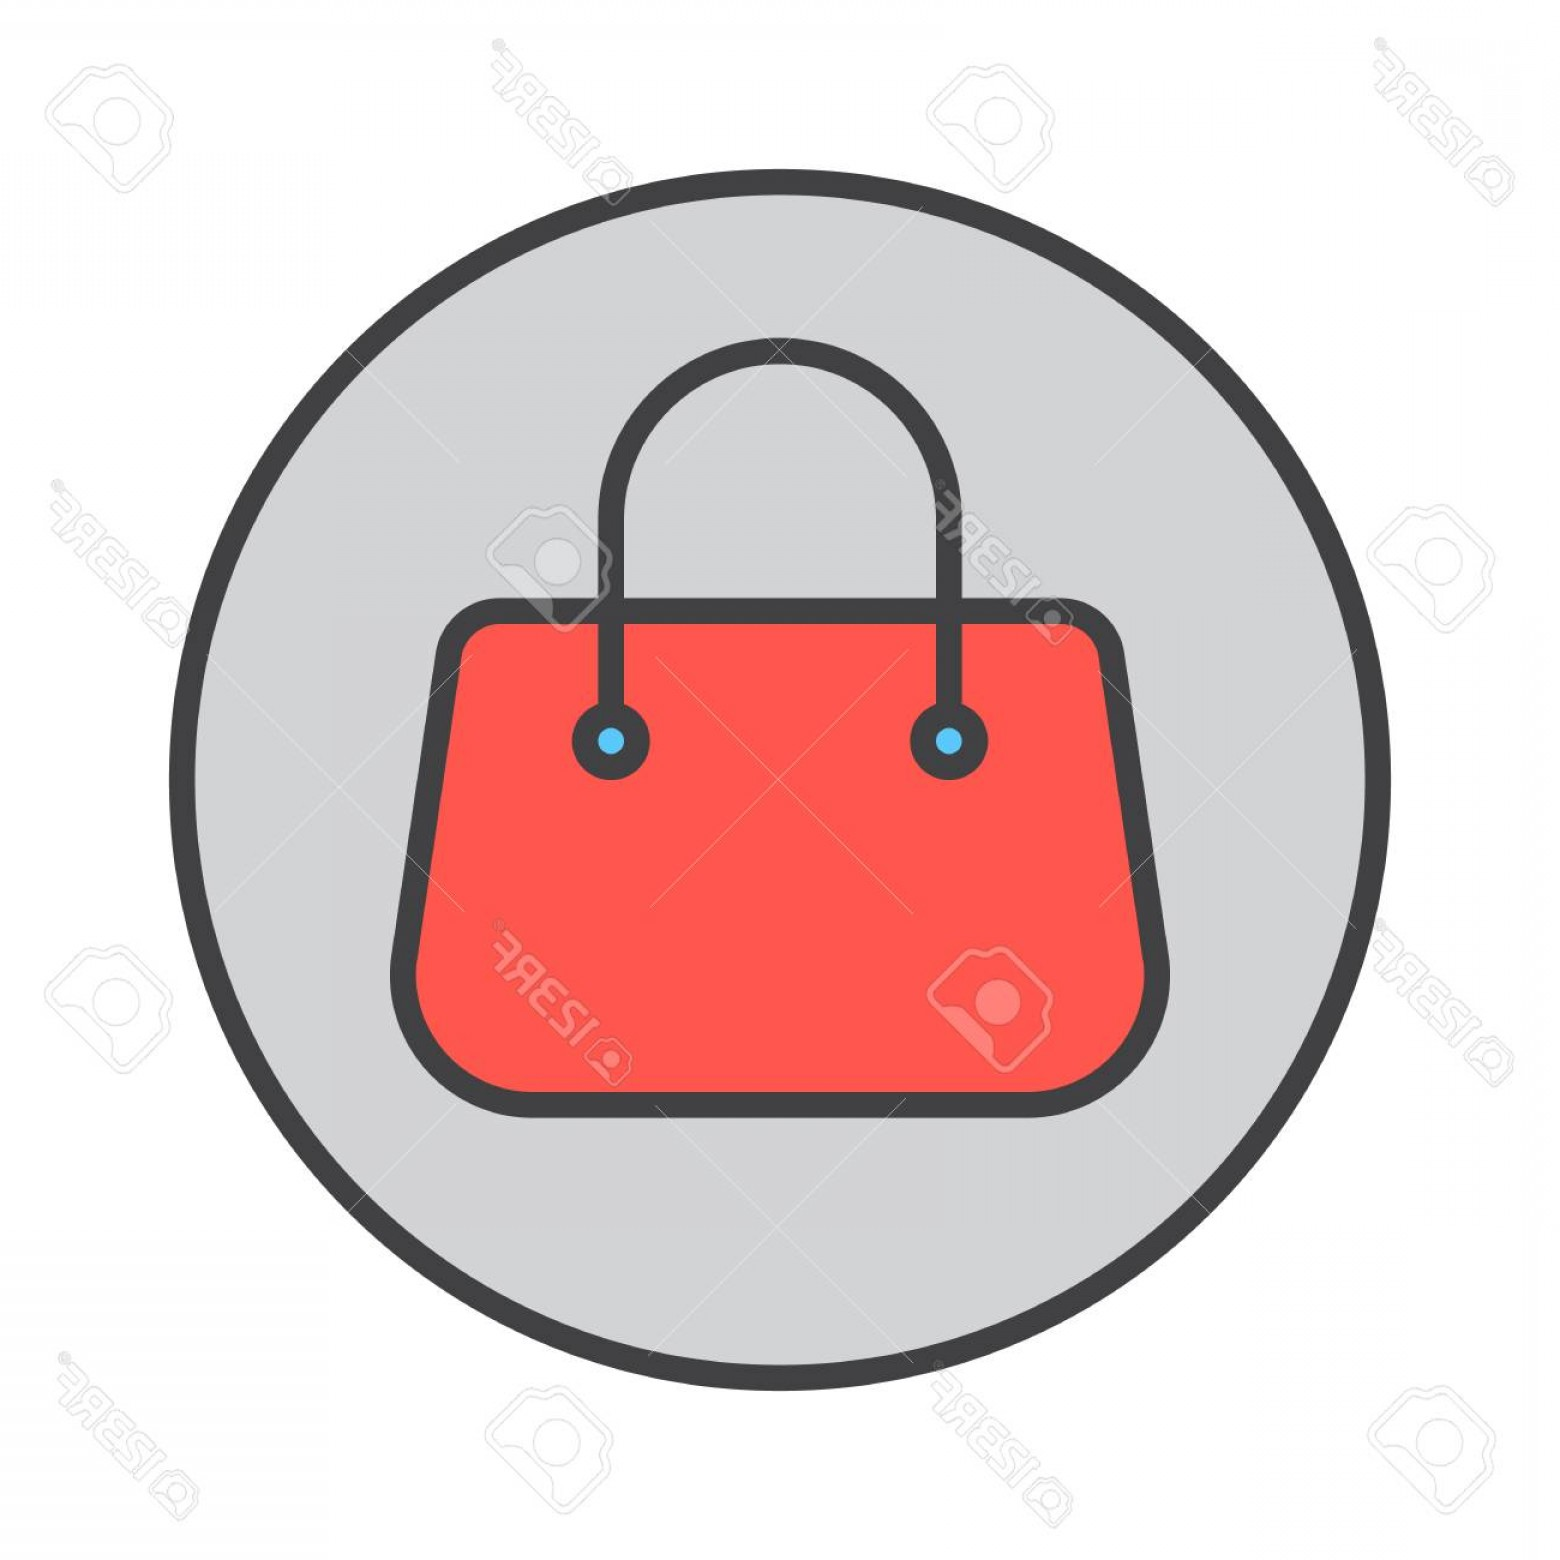 Purse Vector Art: Photostock Vector Purse Handbag Filled Outline Icon Round Colorful Vector Sign Circular Pictogram Symbol Logo Illustra